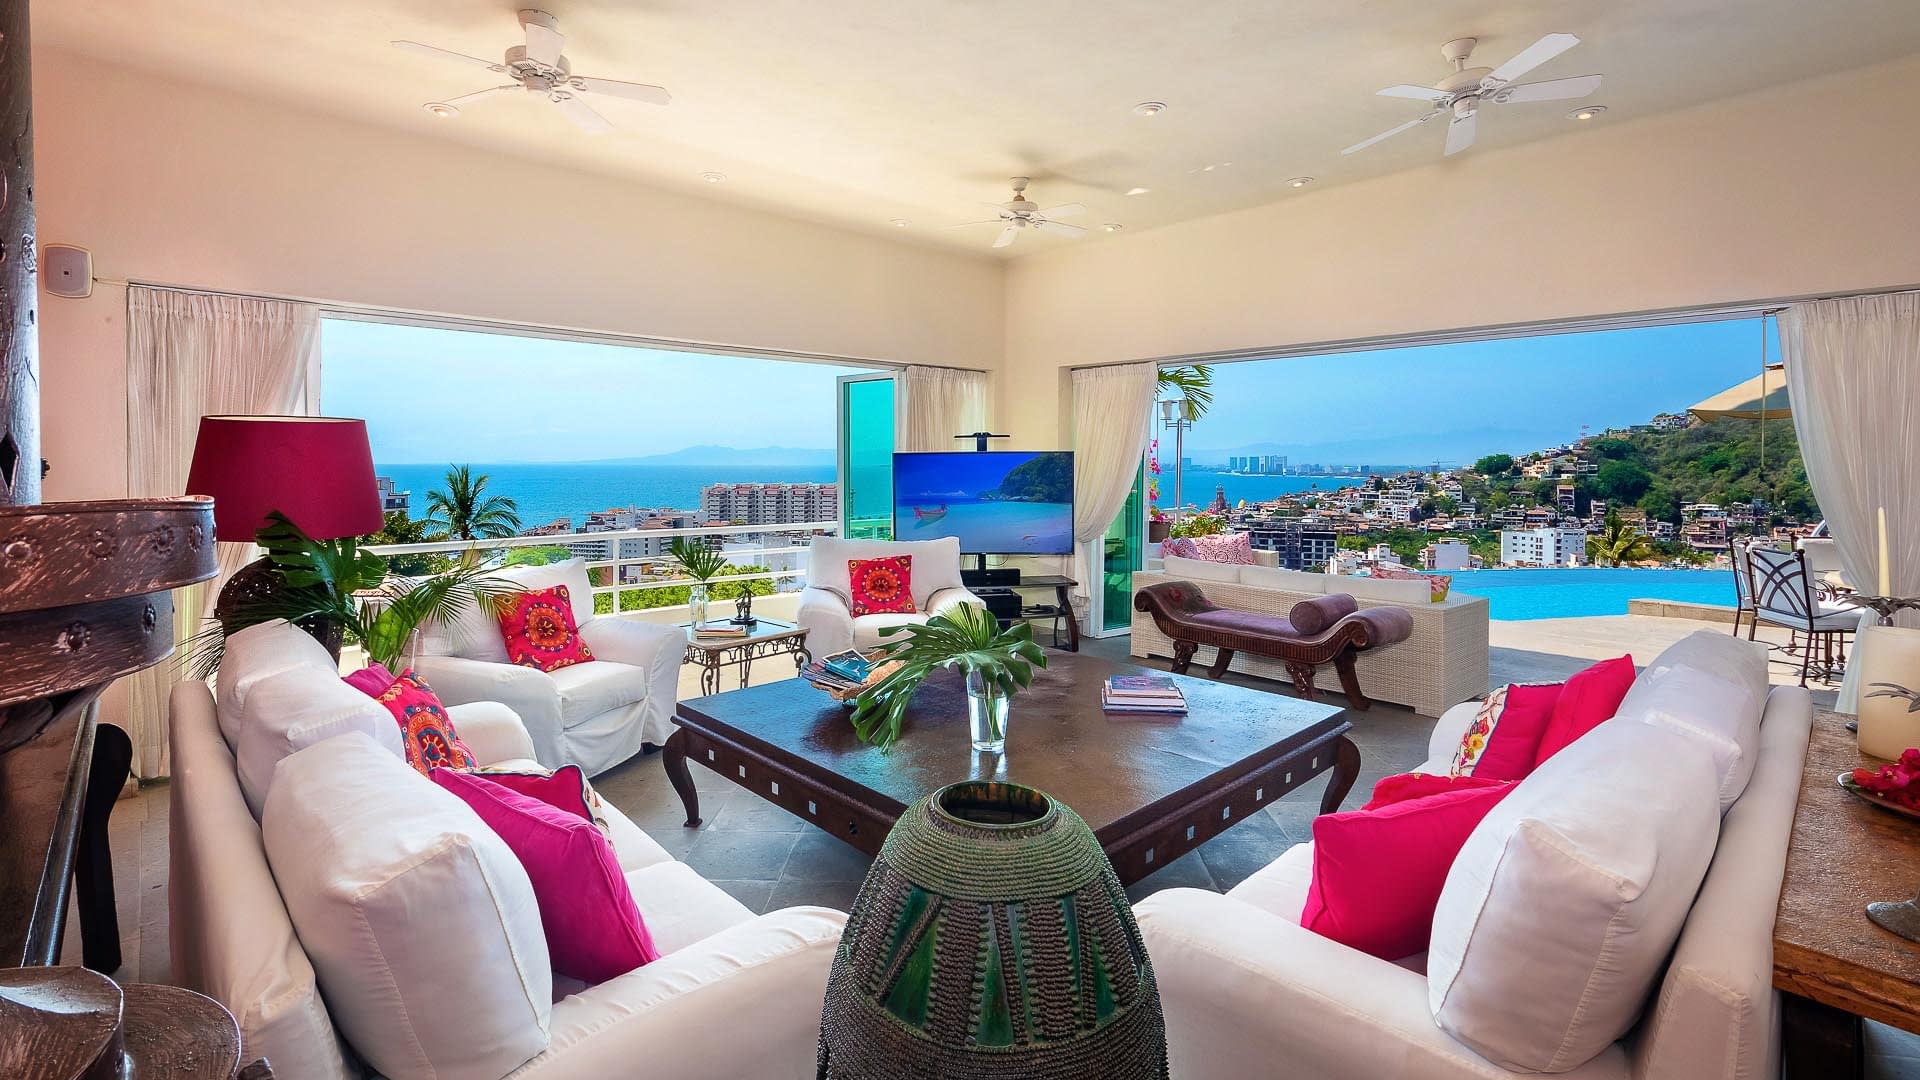 living room and beatiful view at casa yvonneka